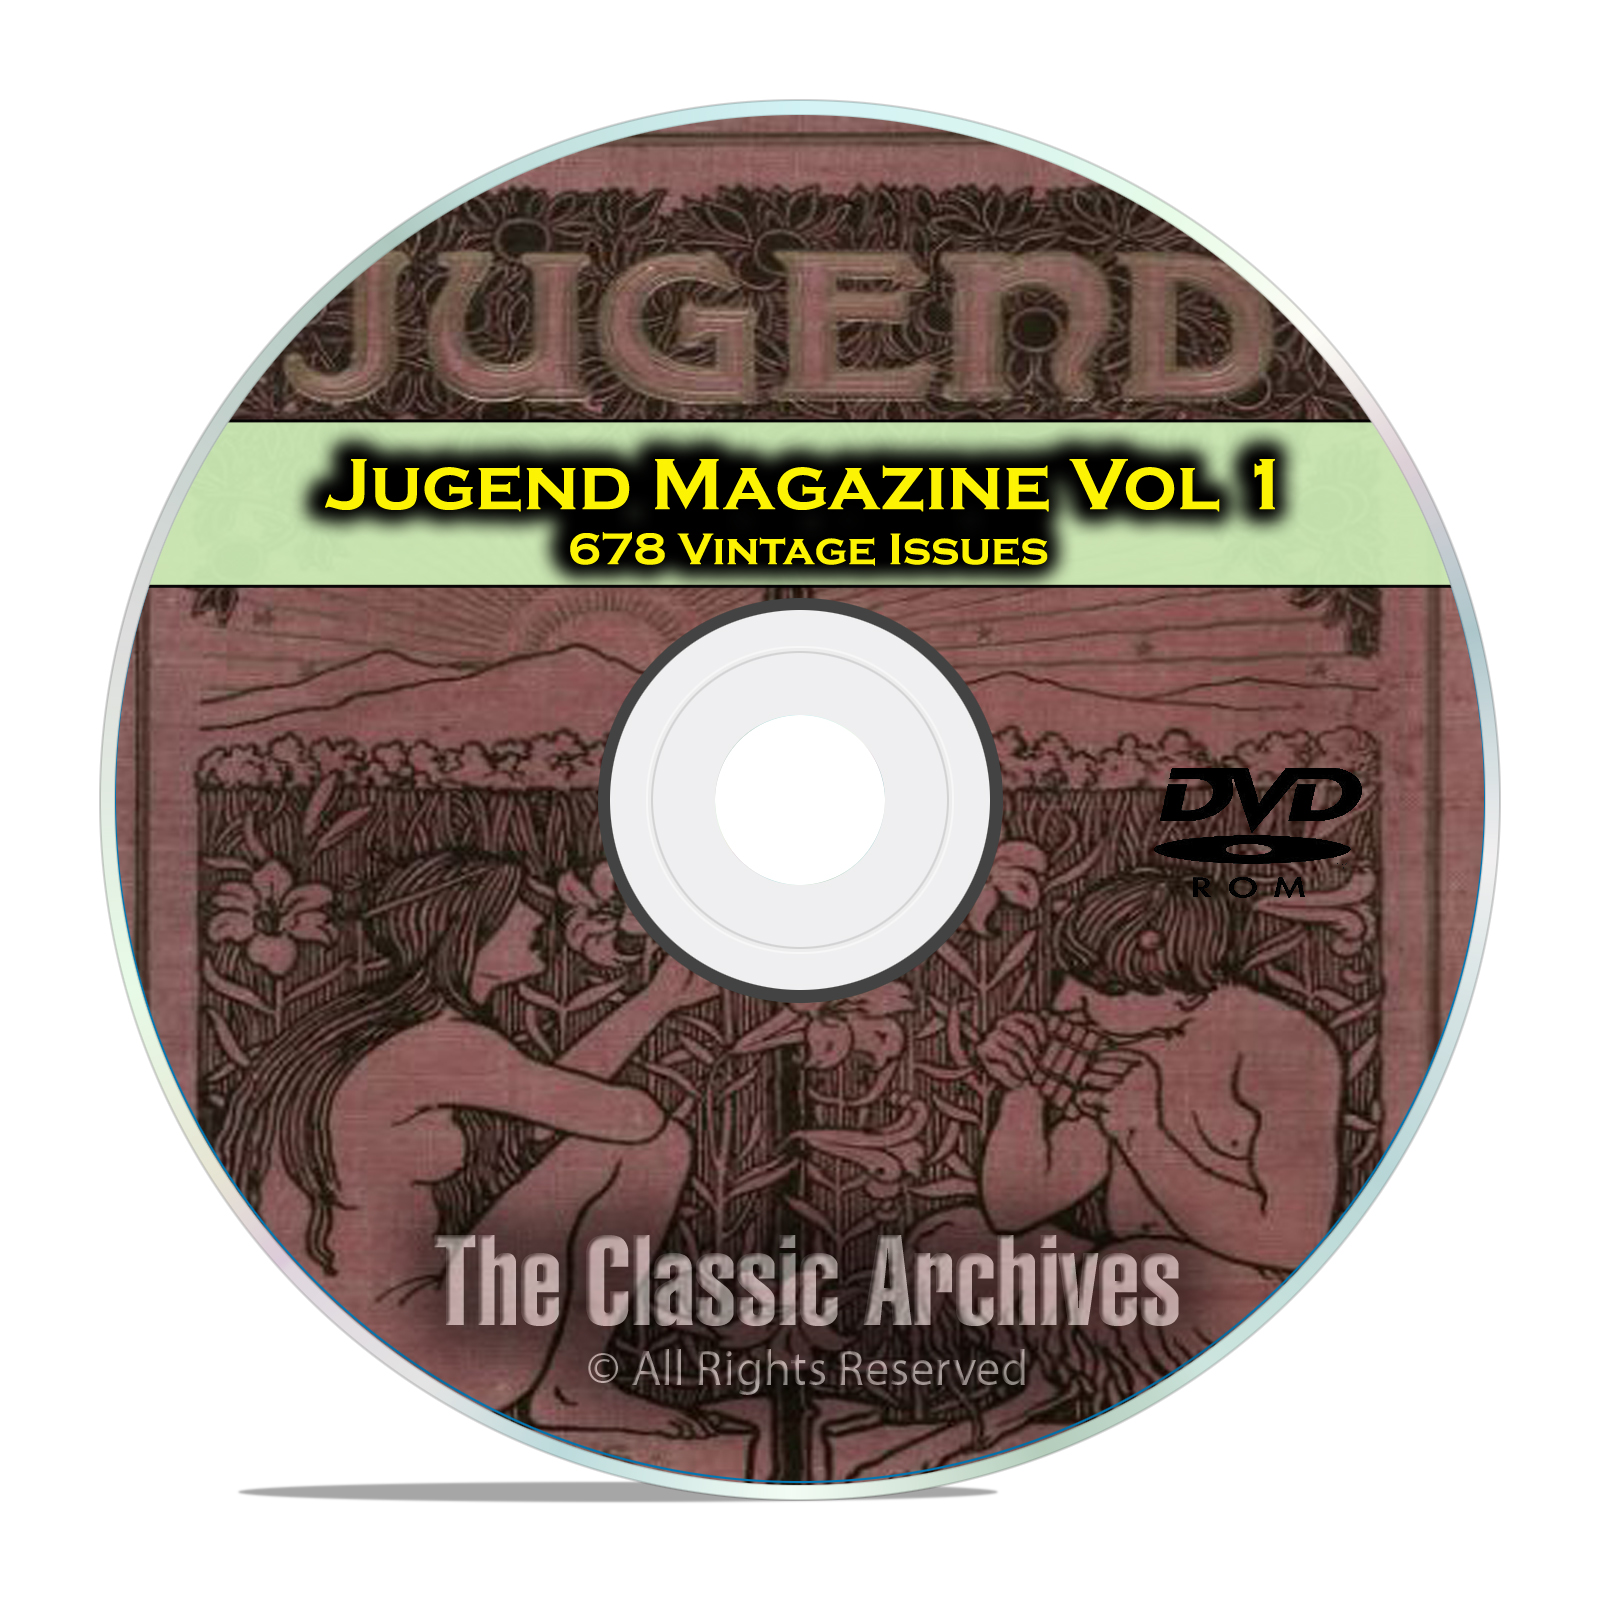 Jugend Vintage German Art Nouveau Magazine Jugendstil, 678 Issues Vol 1 DVD